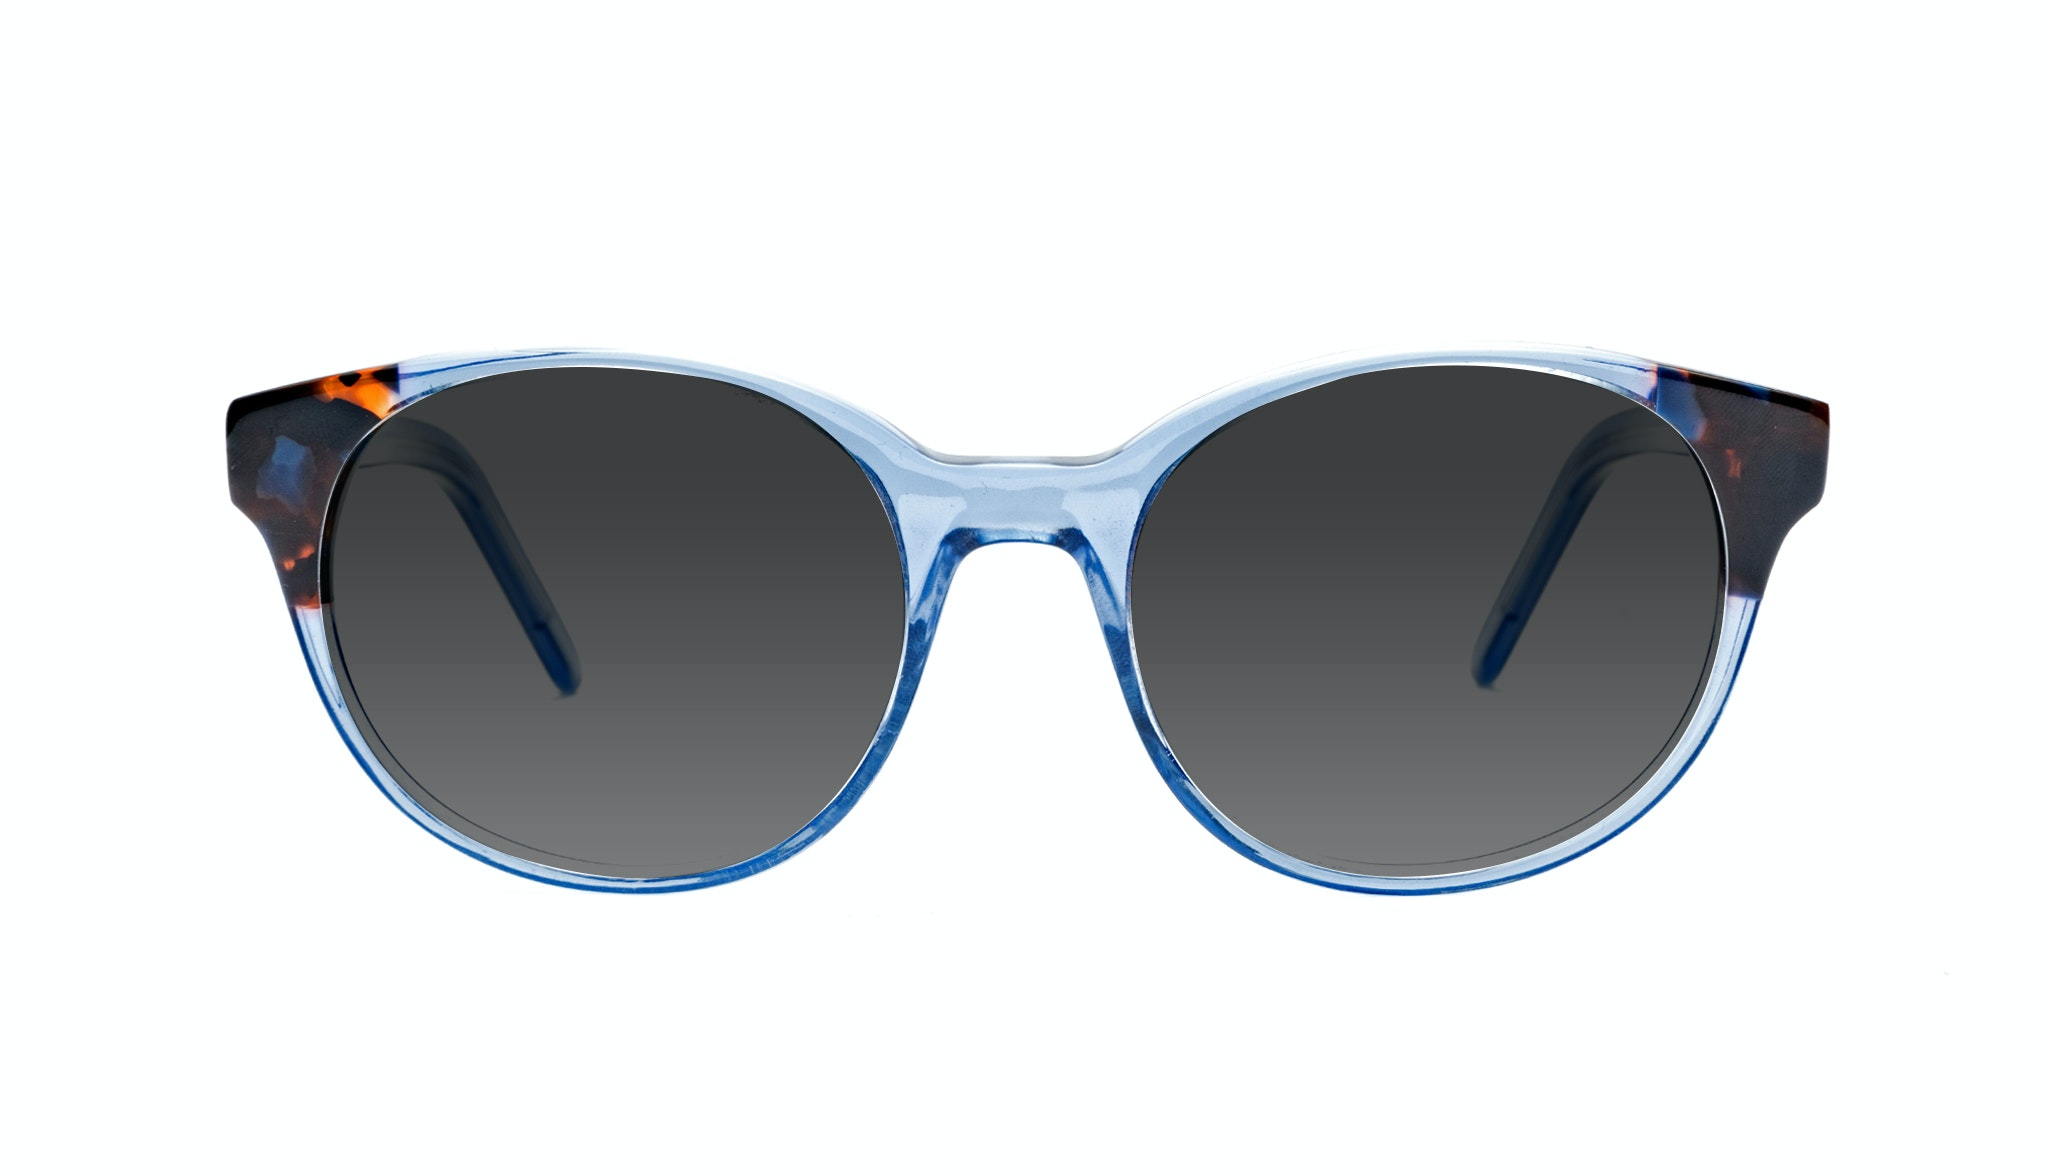 Affordable Fashion Glasses Round Sunglasses Women Bis Blue Wonder